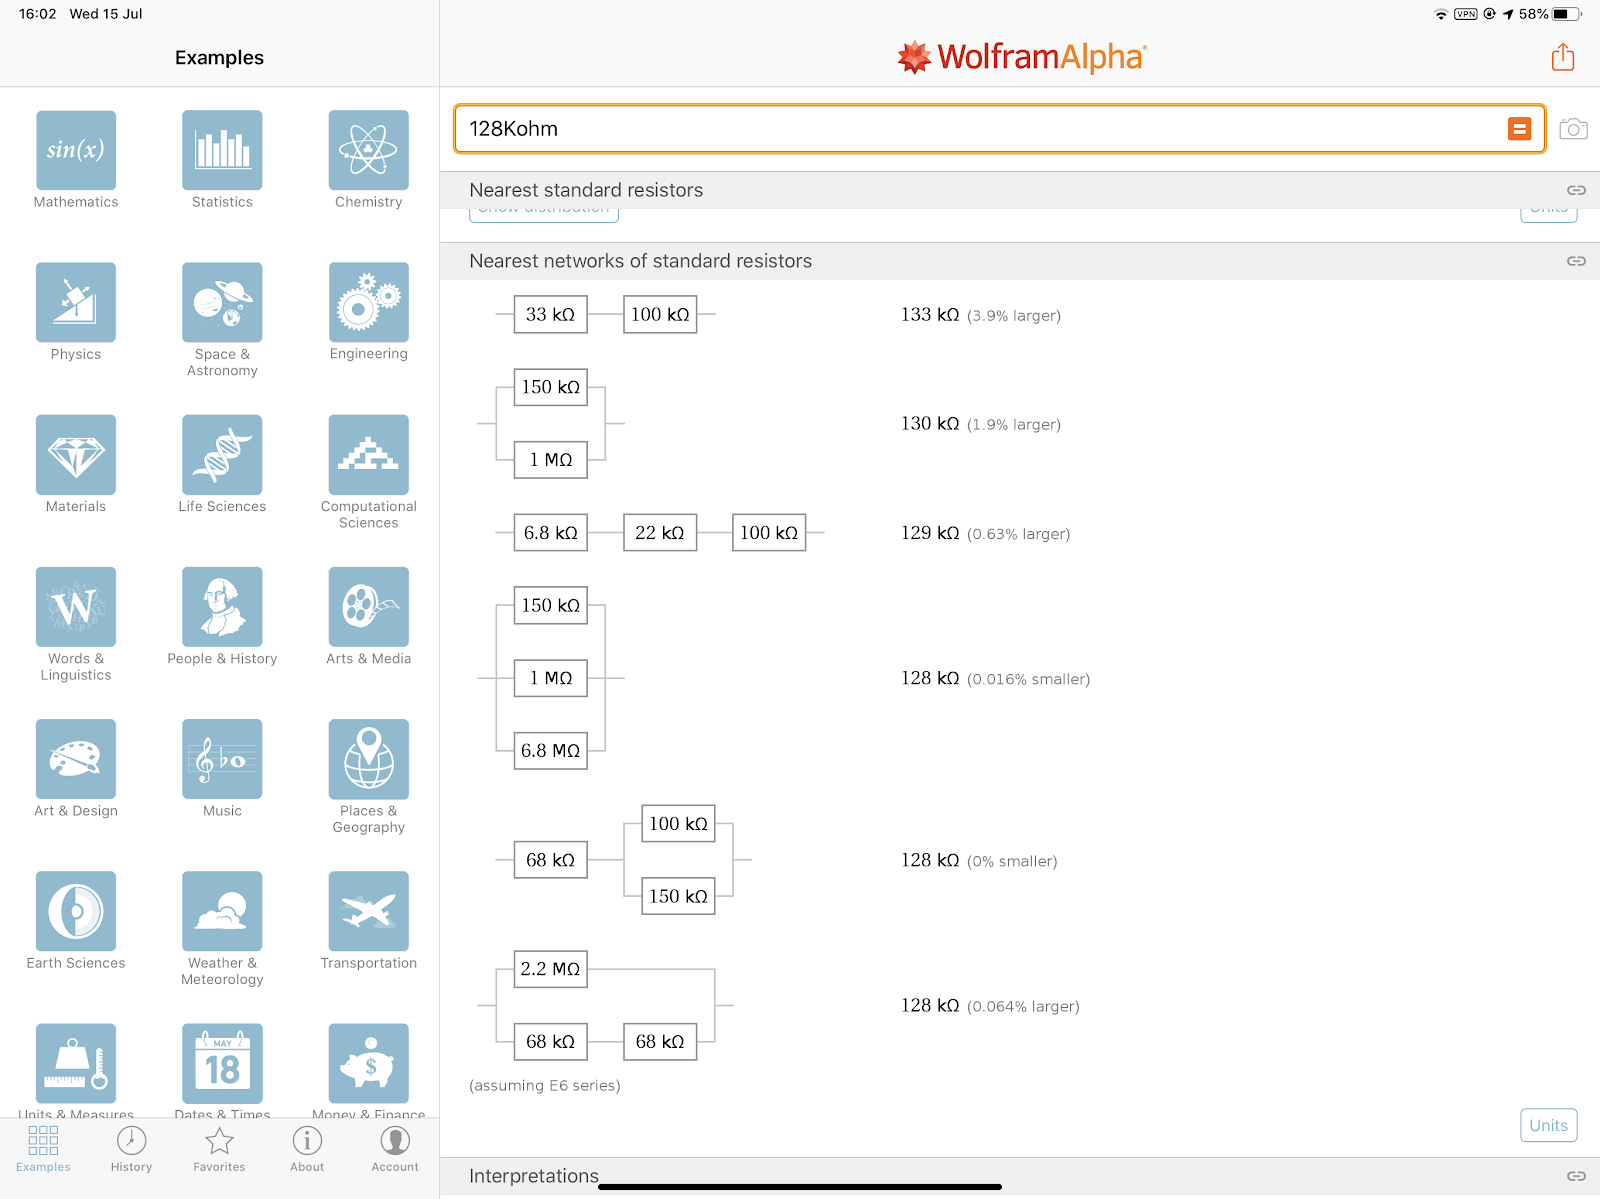 Wolfram Alpha computing